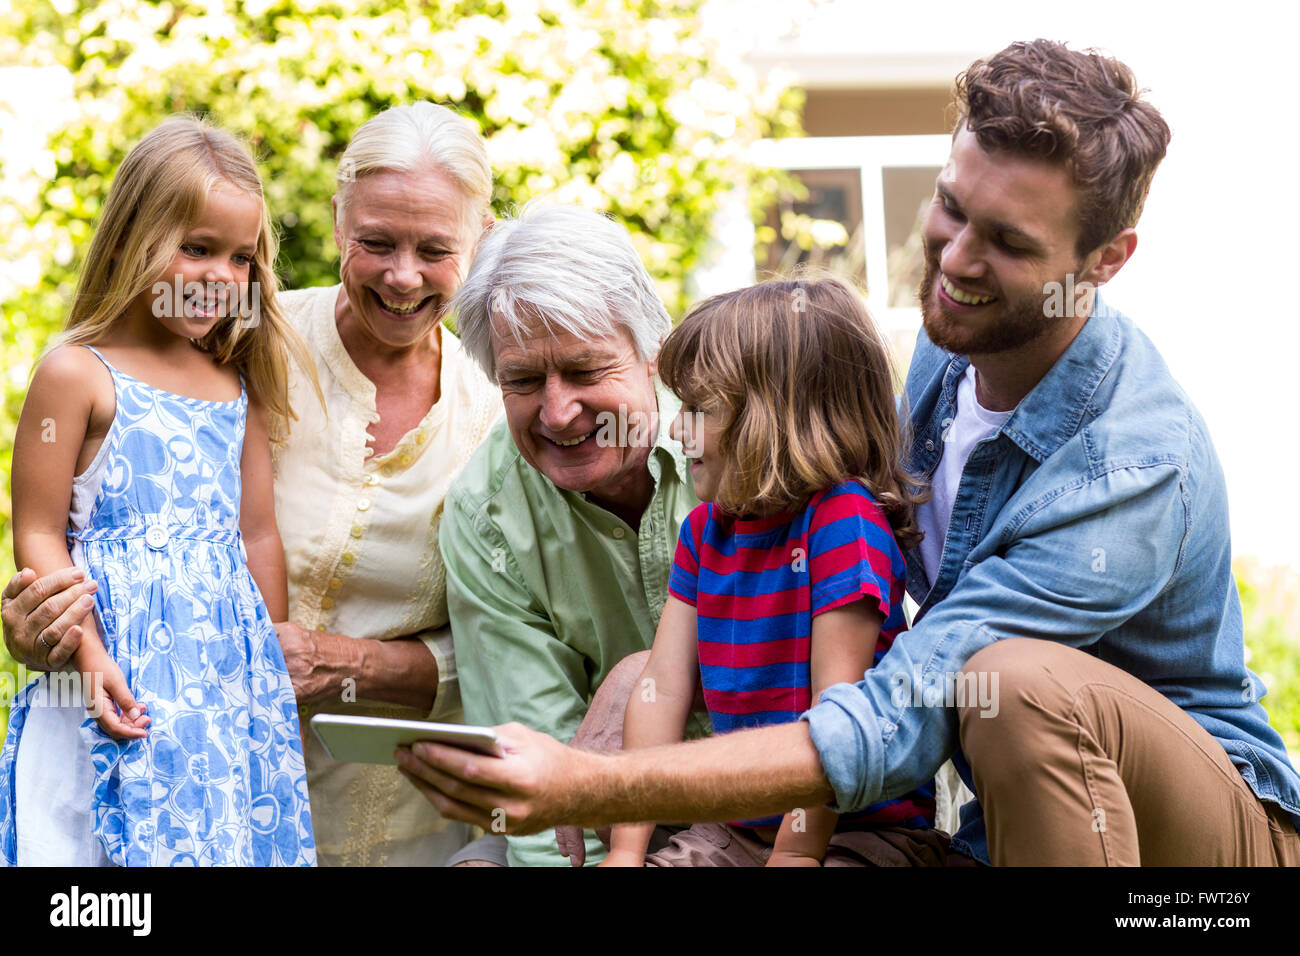 Smiling father taking selfie with family - Stock Image